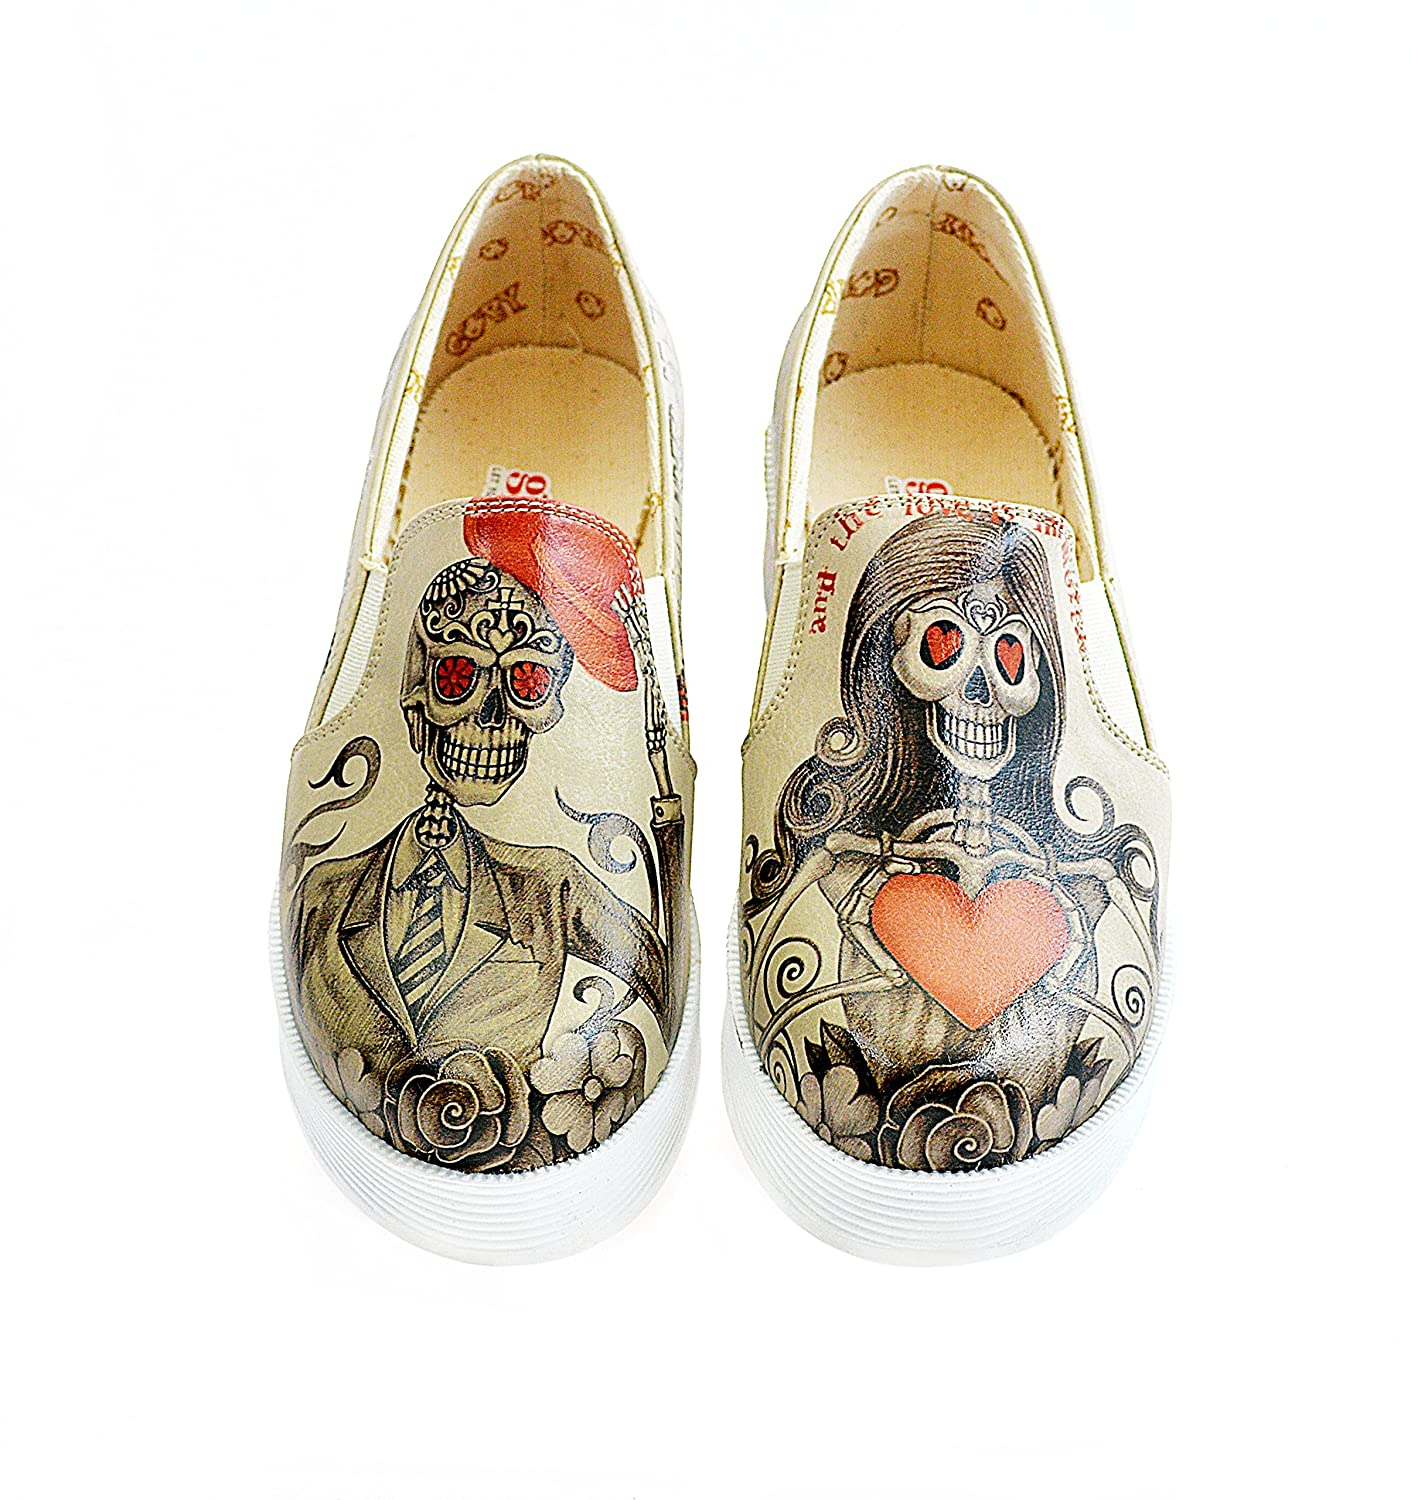 Goby Women's Shoes ''Sugar Skull & Internet Slip-on ...